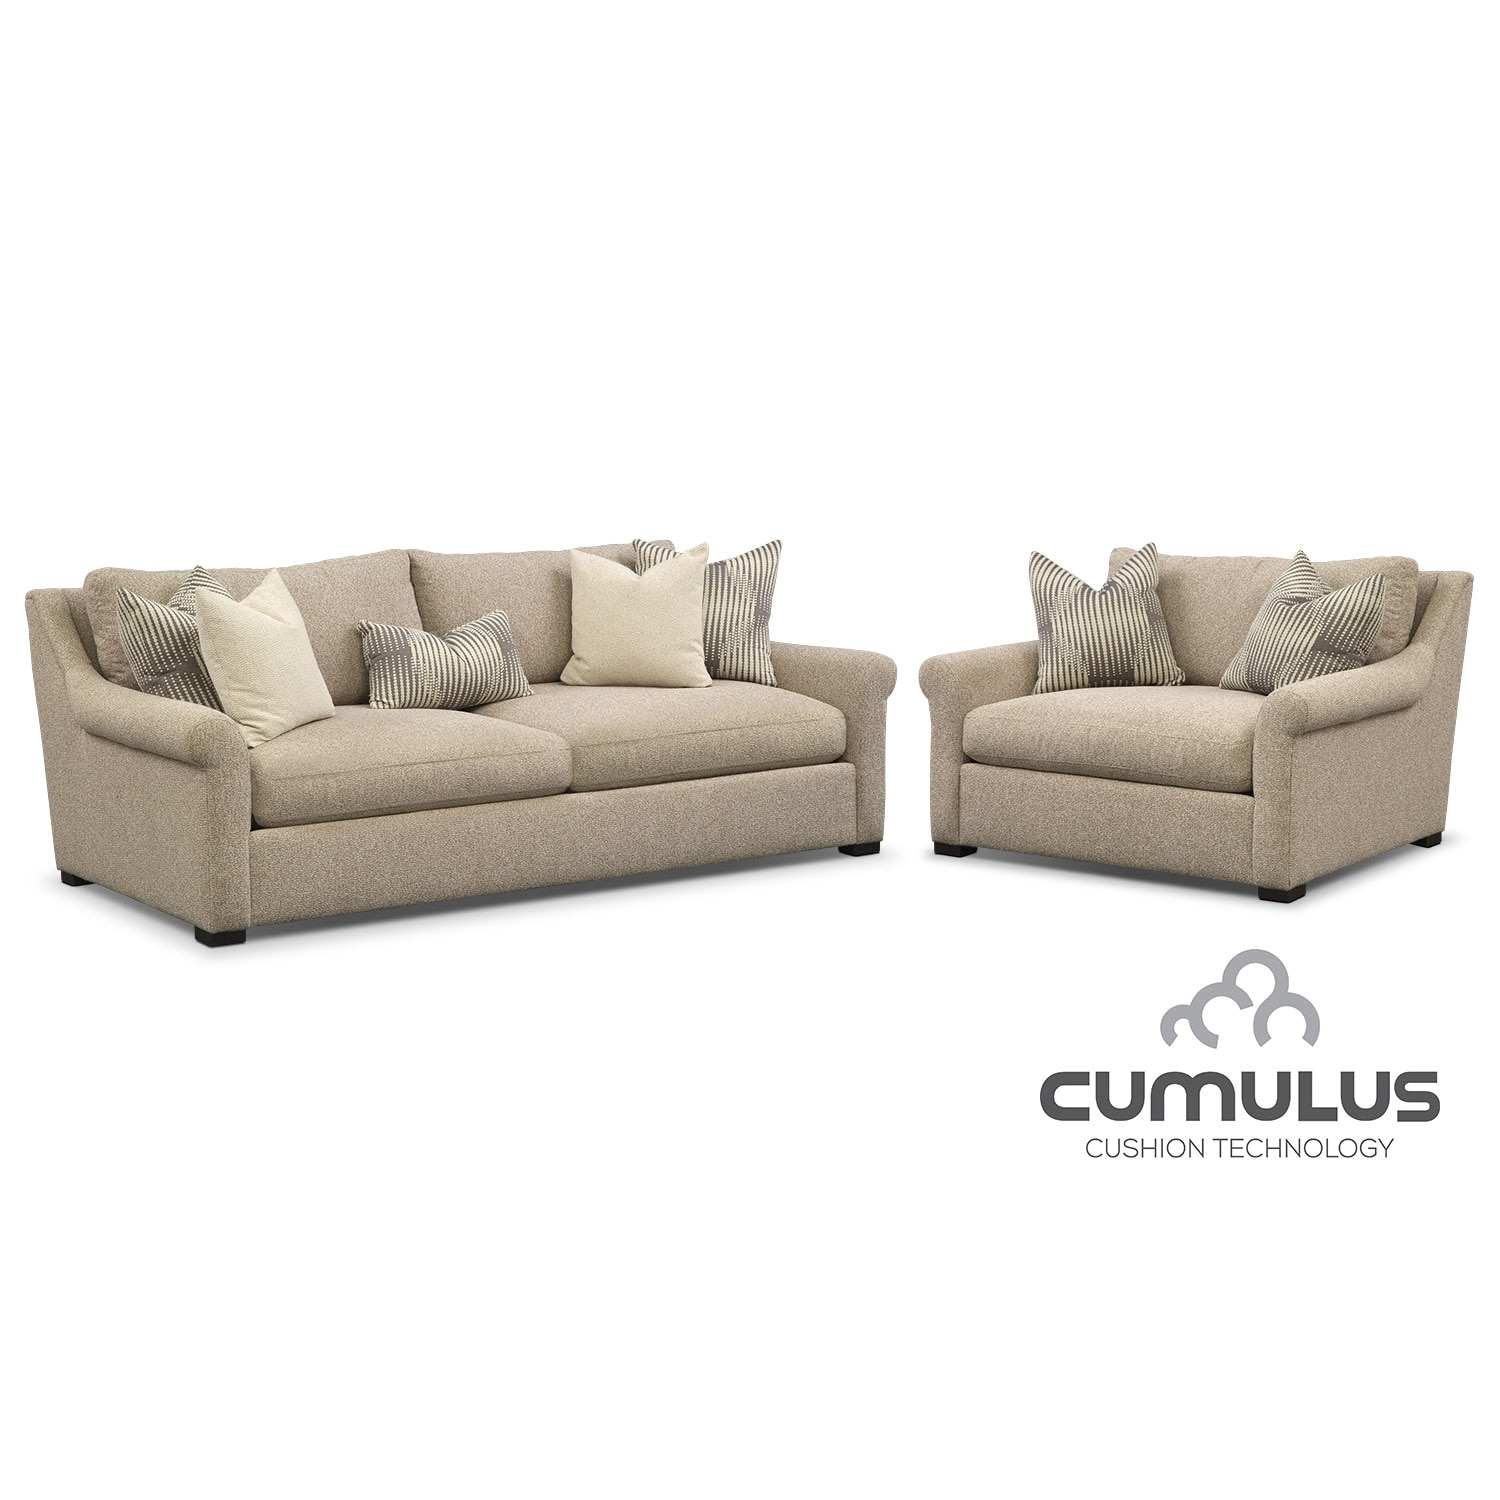 Living Room Furniture - Roberston Cumulus Sofa and Chair and a Half Set - Beige